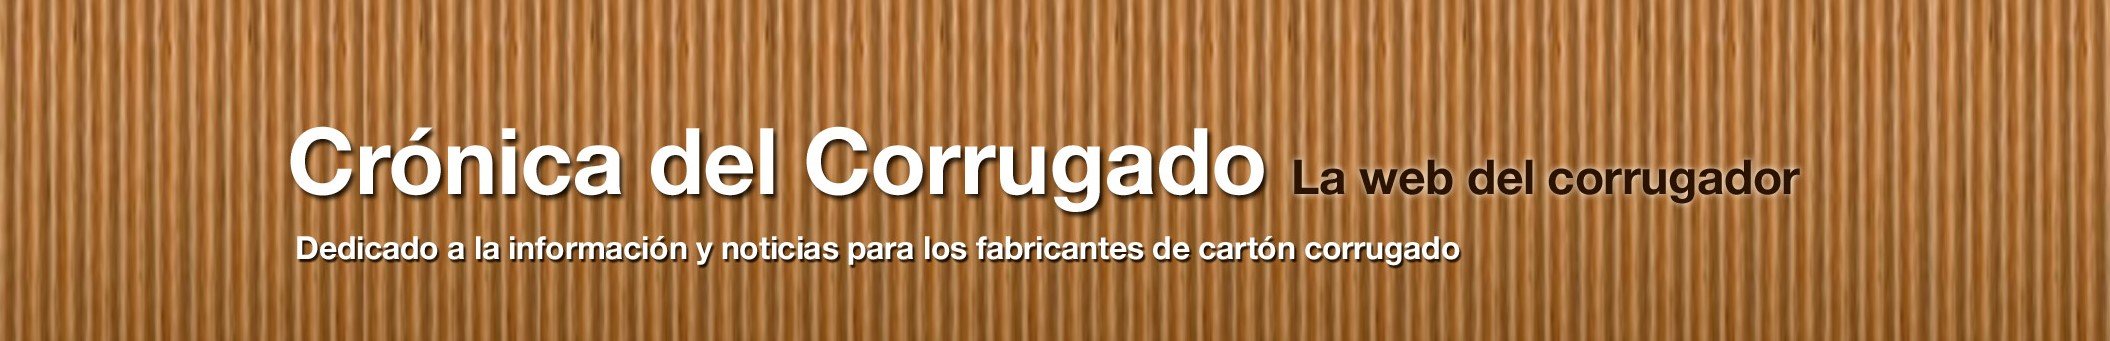 Crónica Del Corrugado la Web del Corrugador